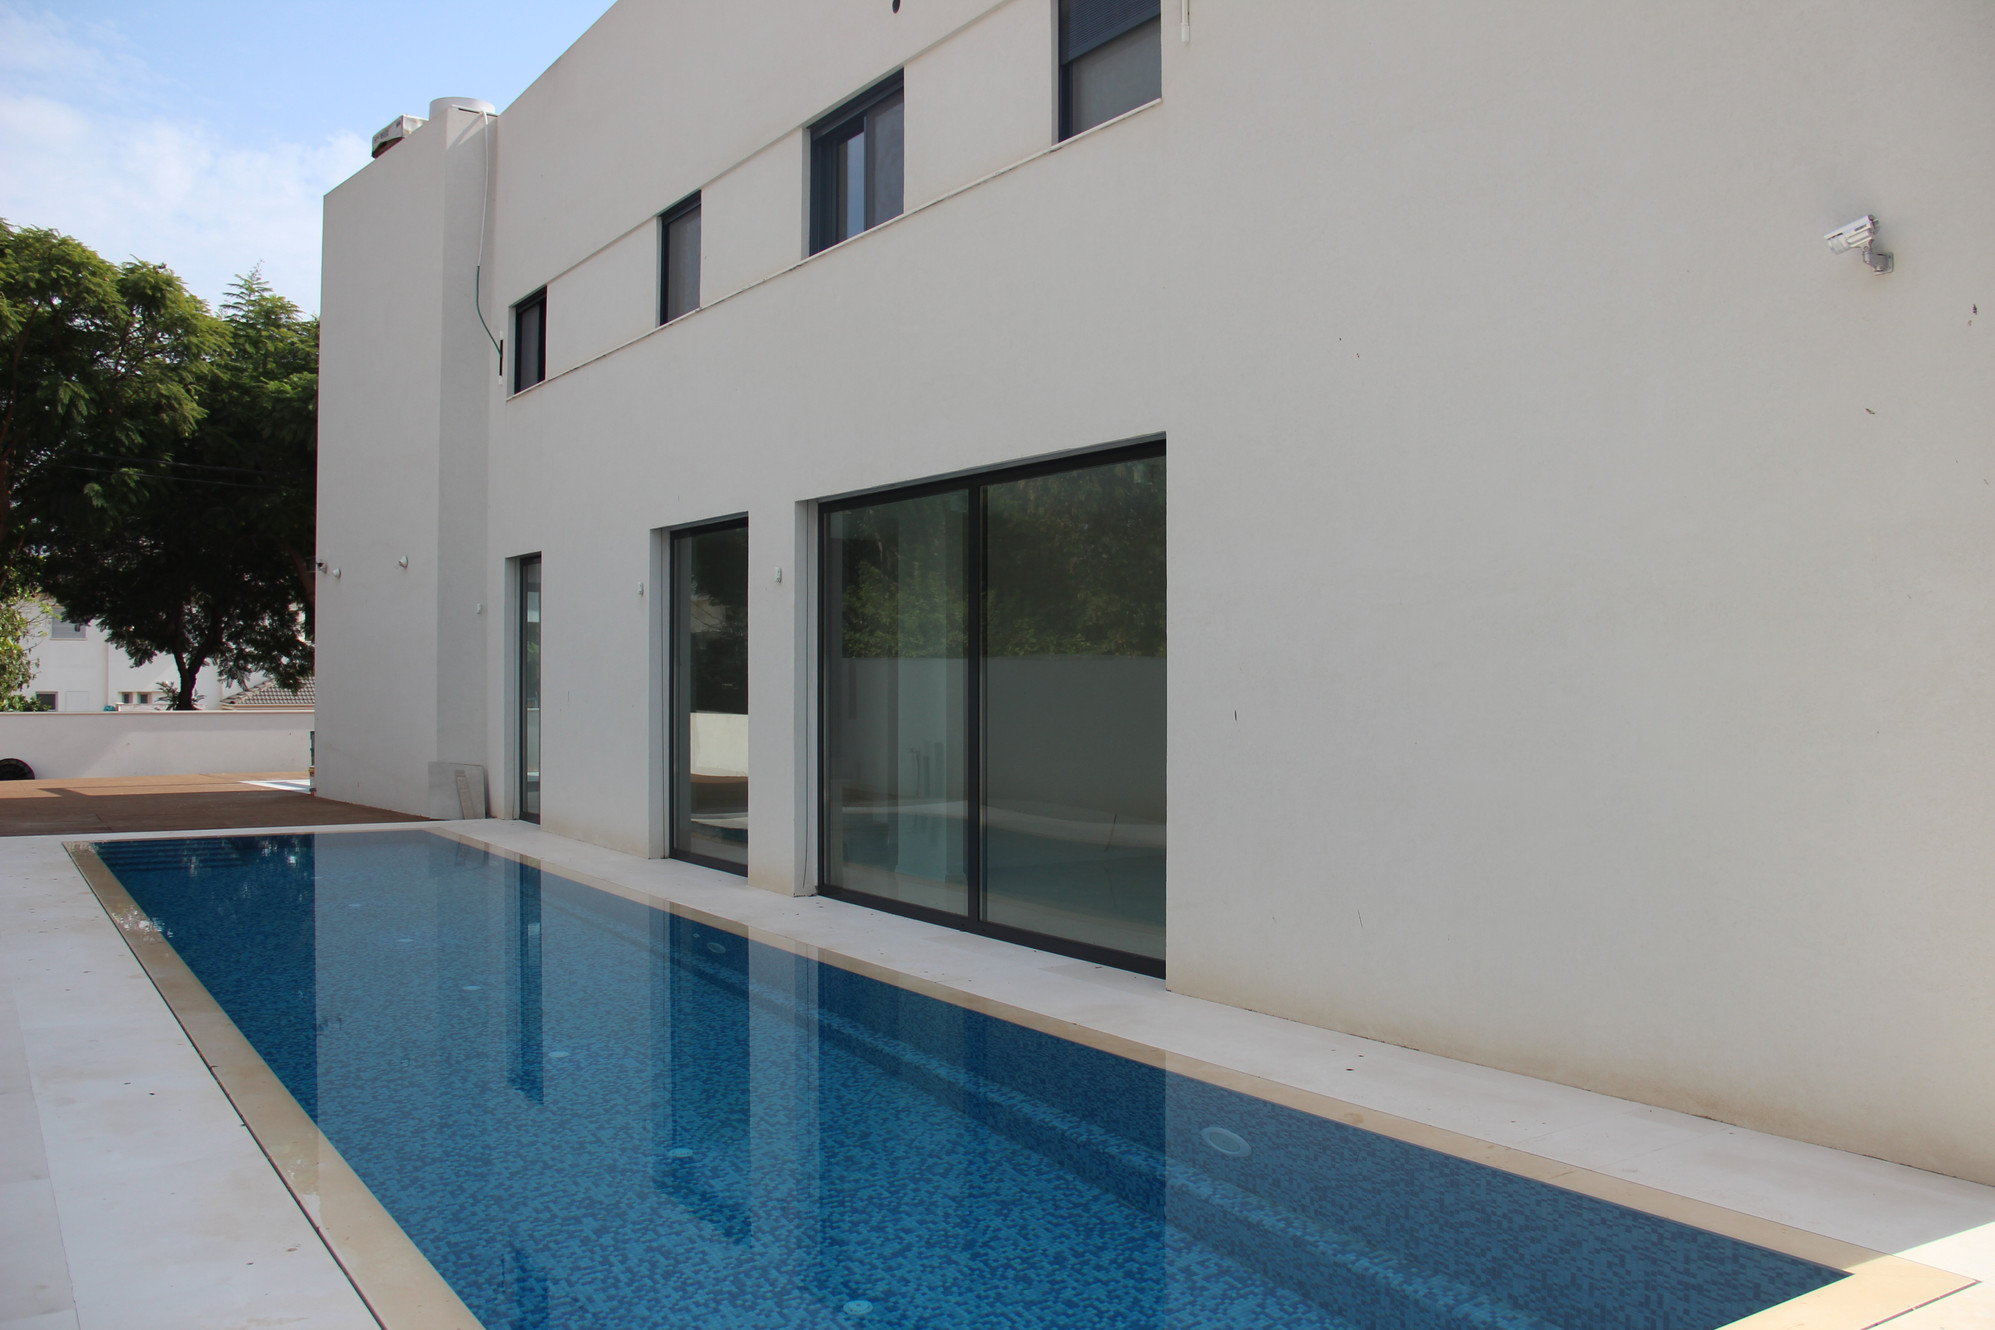 Raanana Homes Houses Flats Penthouses For Sale Or To Rent Accès direct aux autoroutes principales. raanana homes houses flats